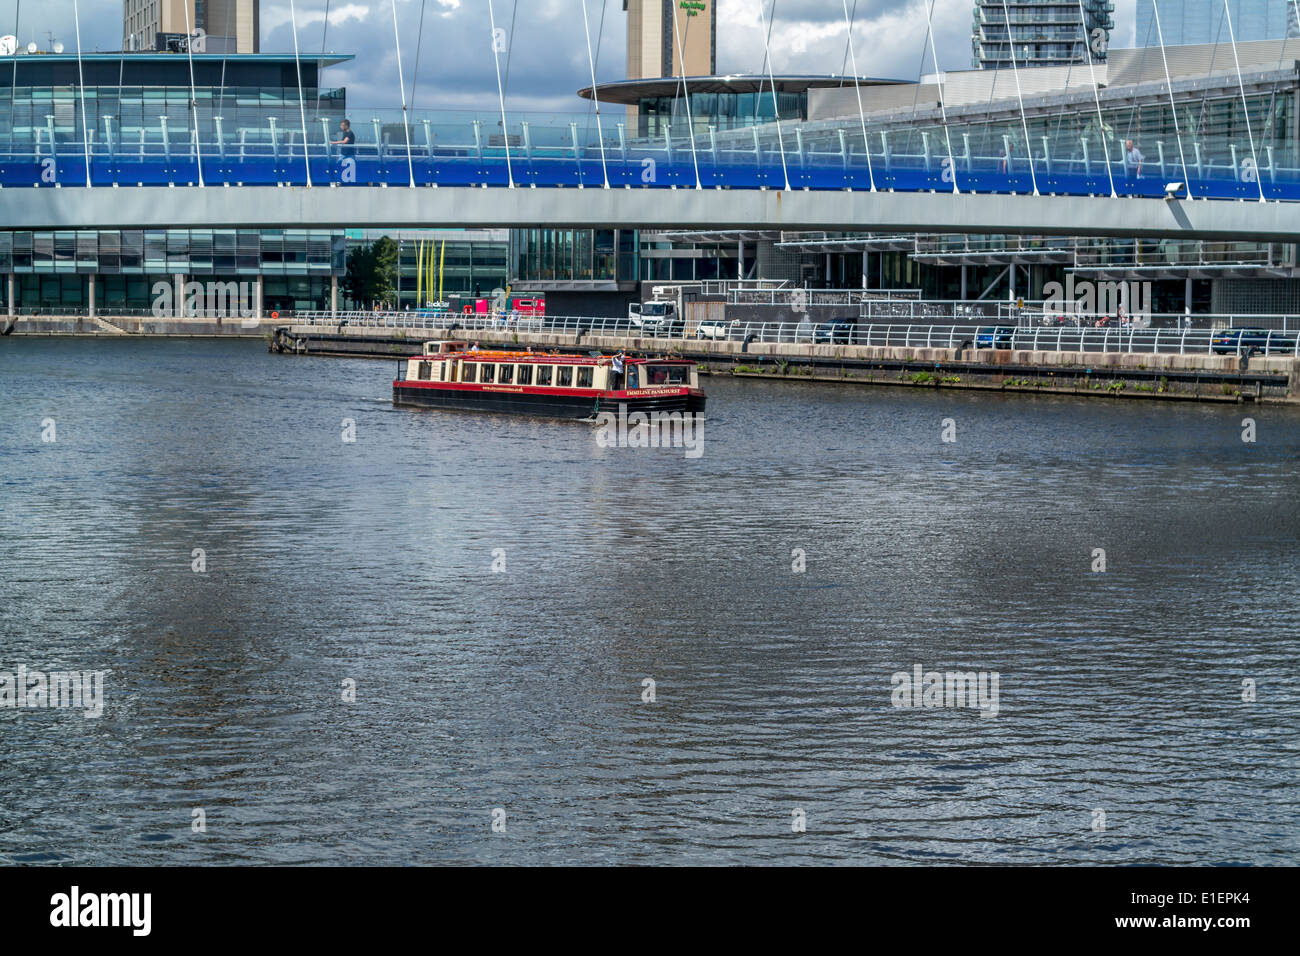 Small pleasure cruiser on the Manchester Sip Canal - Stock Image